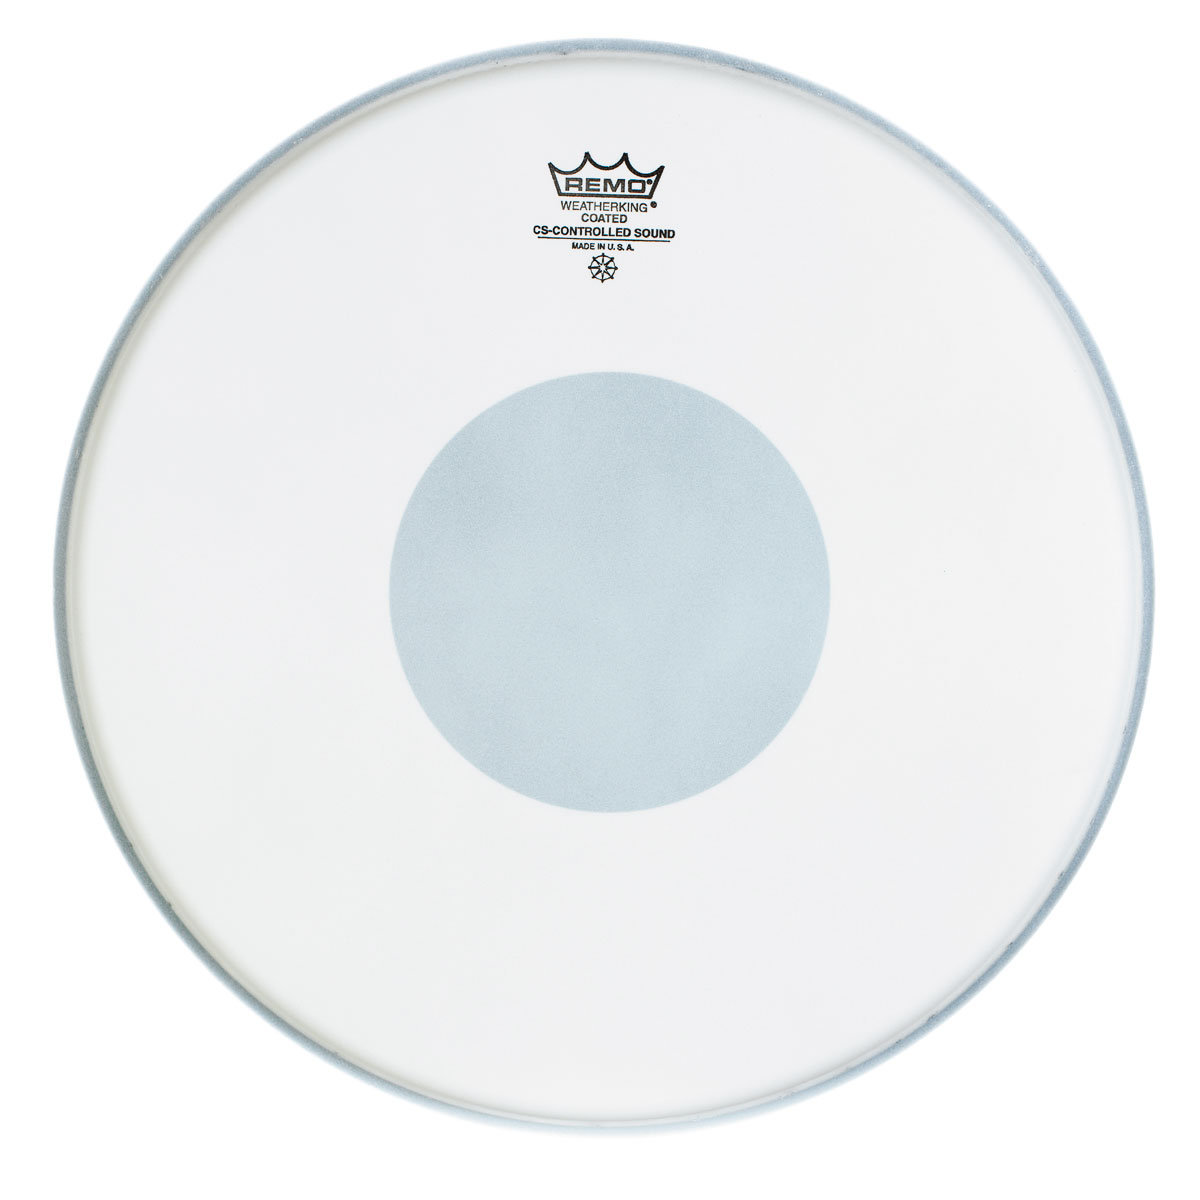 "Remo 13"" Controlled Sound Coated Drum Head with Black Dot"